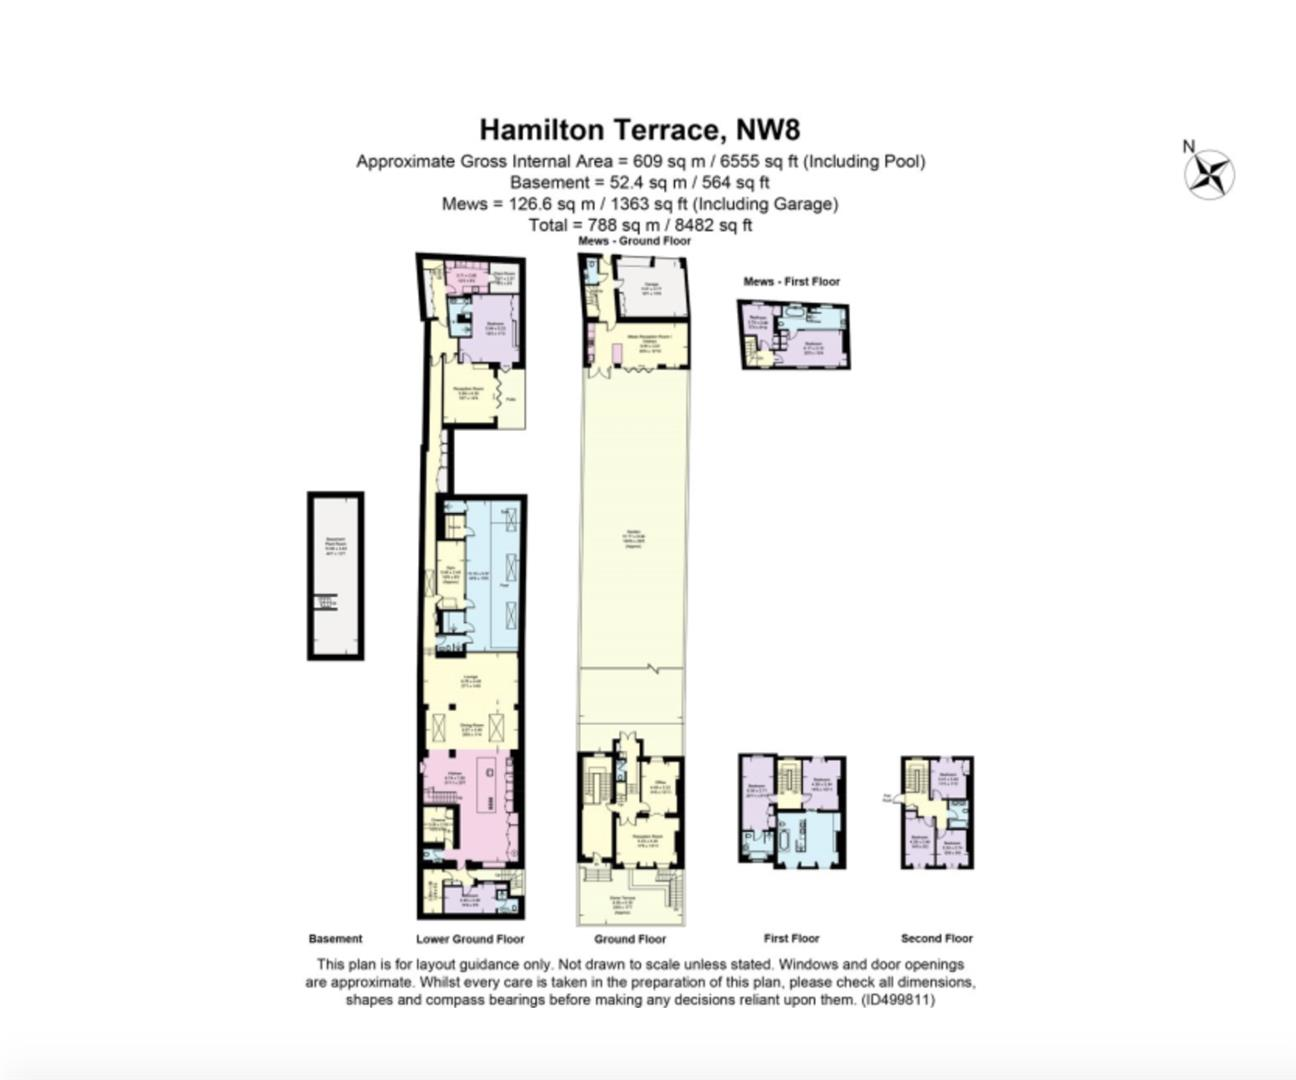 sold-hamilton-terrace-london-283-floorview1